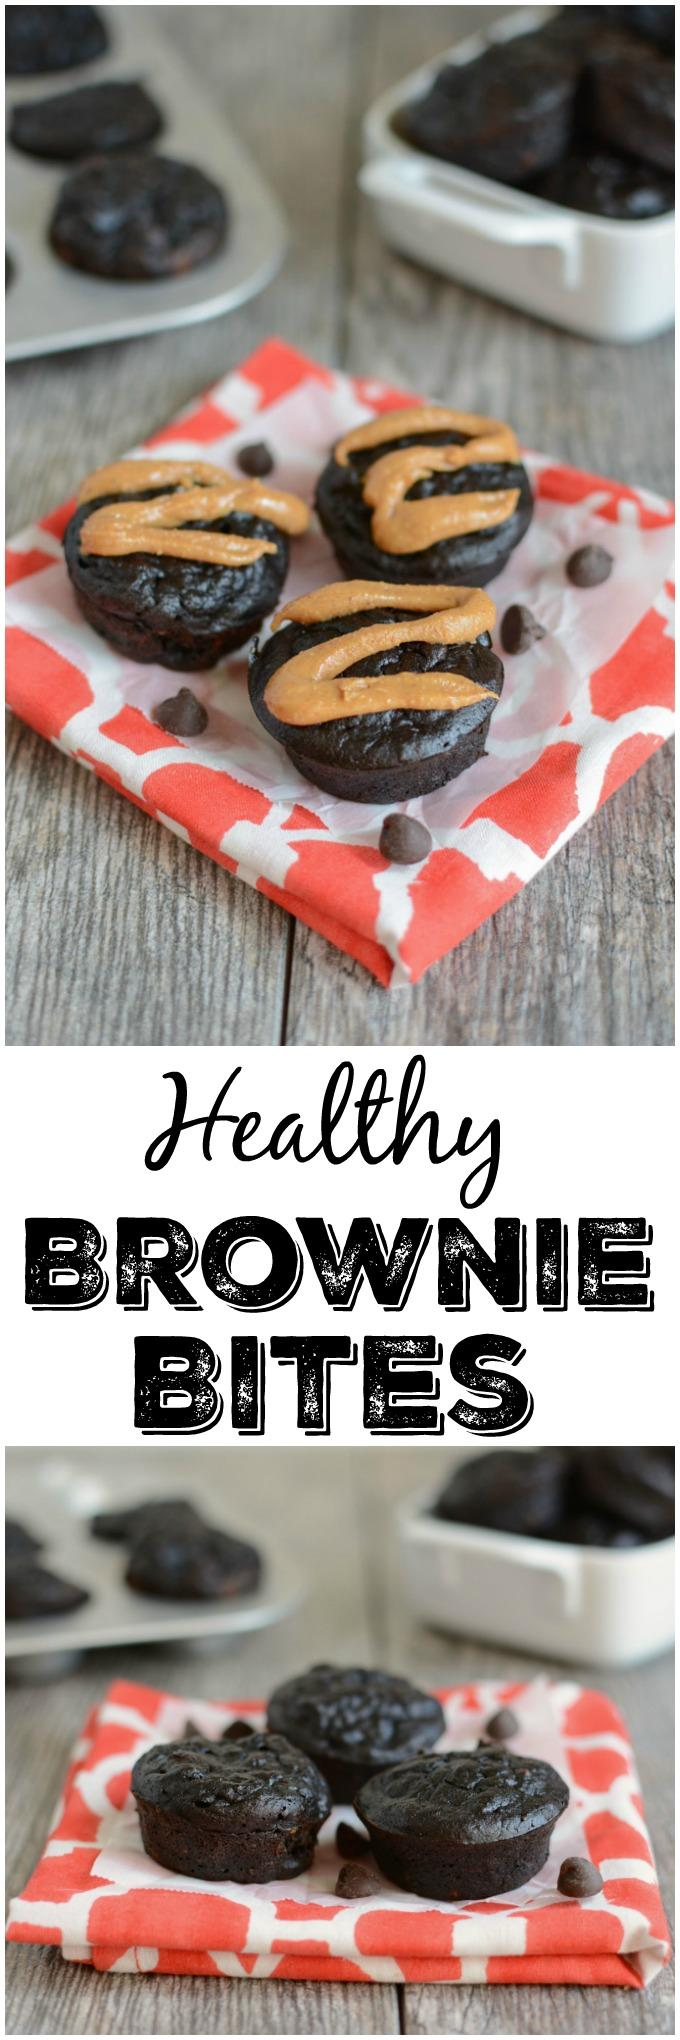 These Healthy Brownie Bites require just seven ingredients, are healthy enough for a snack and also make a great dessert recipe!